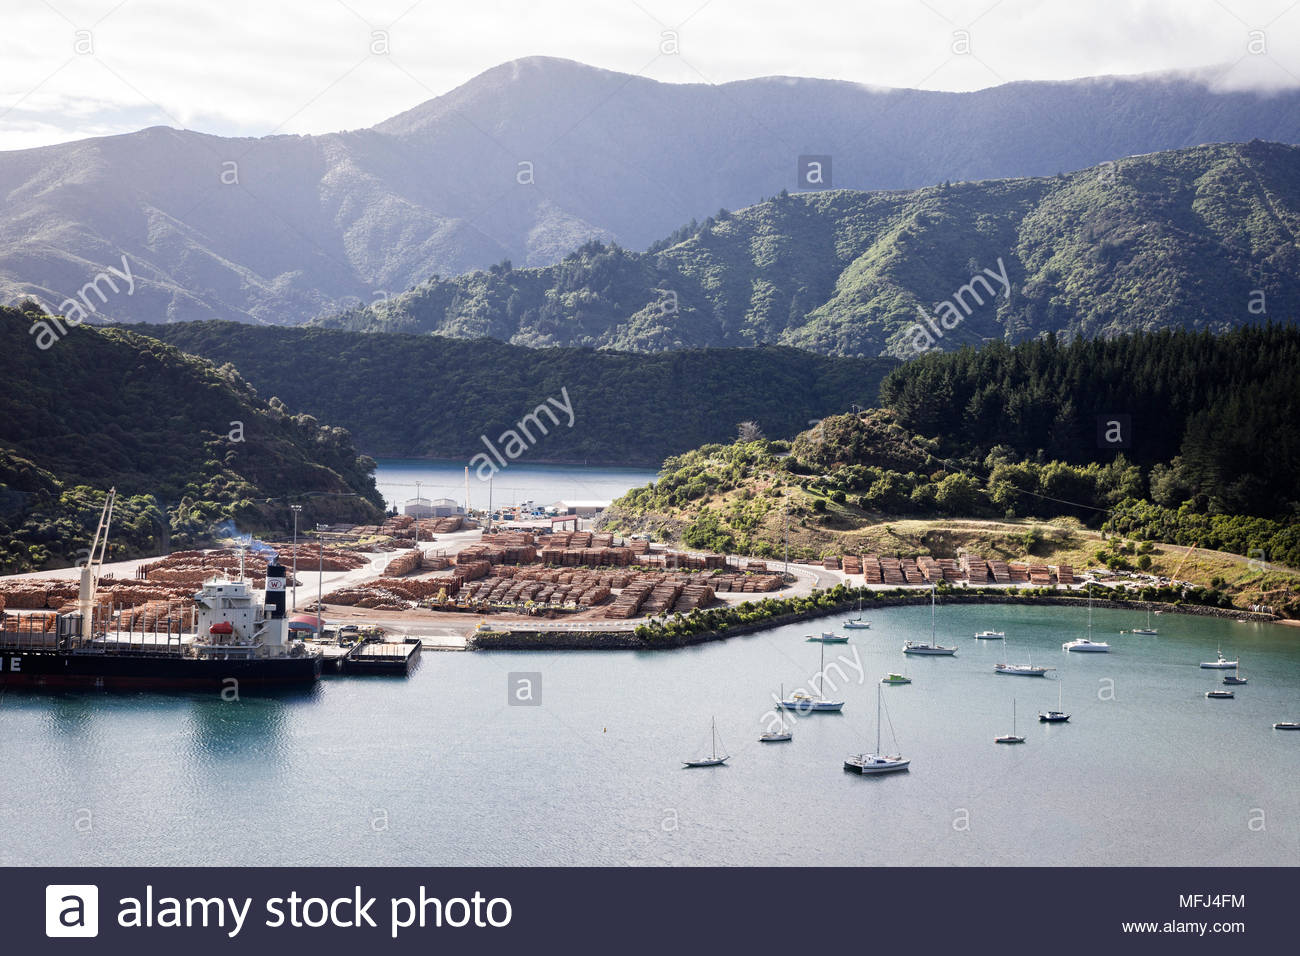 Logging operations in Marlborough Sounds near Picton, South Island, New Zealand. - Stock Image